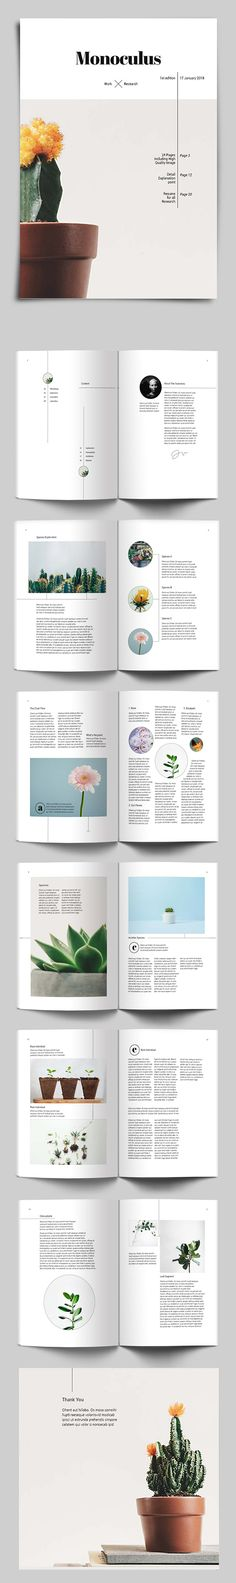 Creative Magazine Style Brochure Template #brochuretemplate #catalogdesign #booklet #annualreport #printdesign #psdtemplate